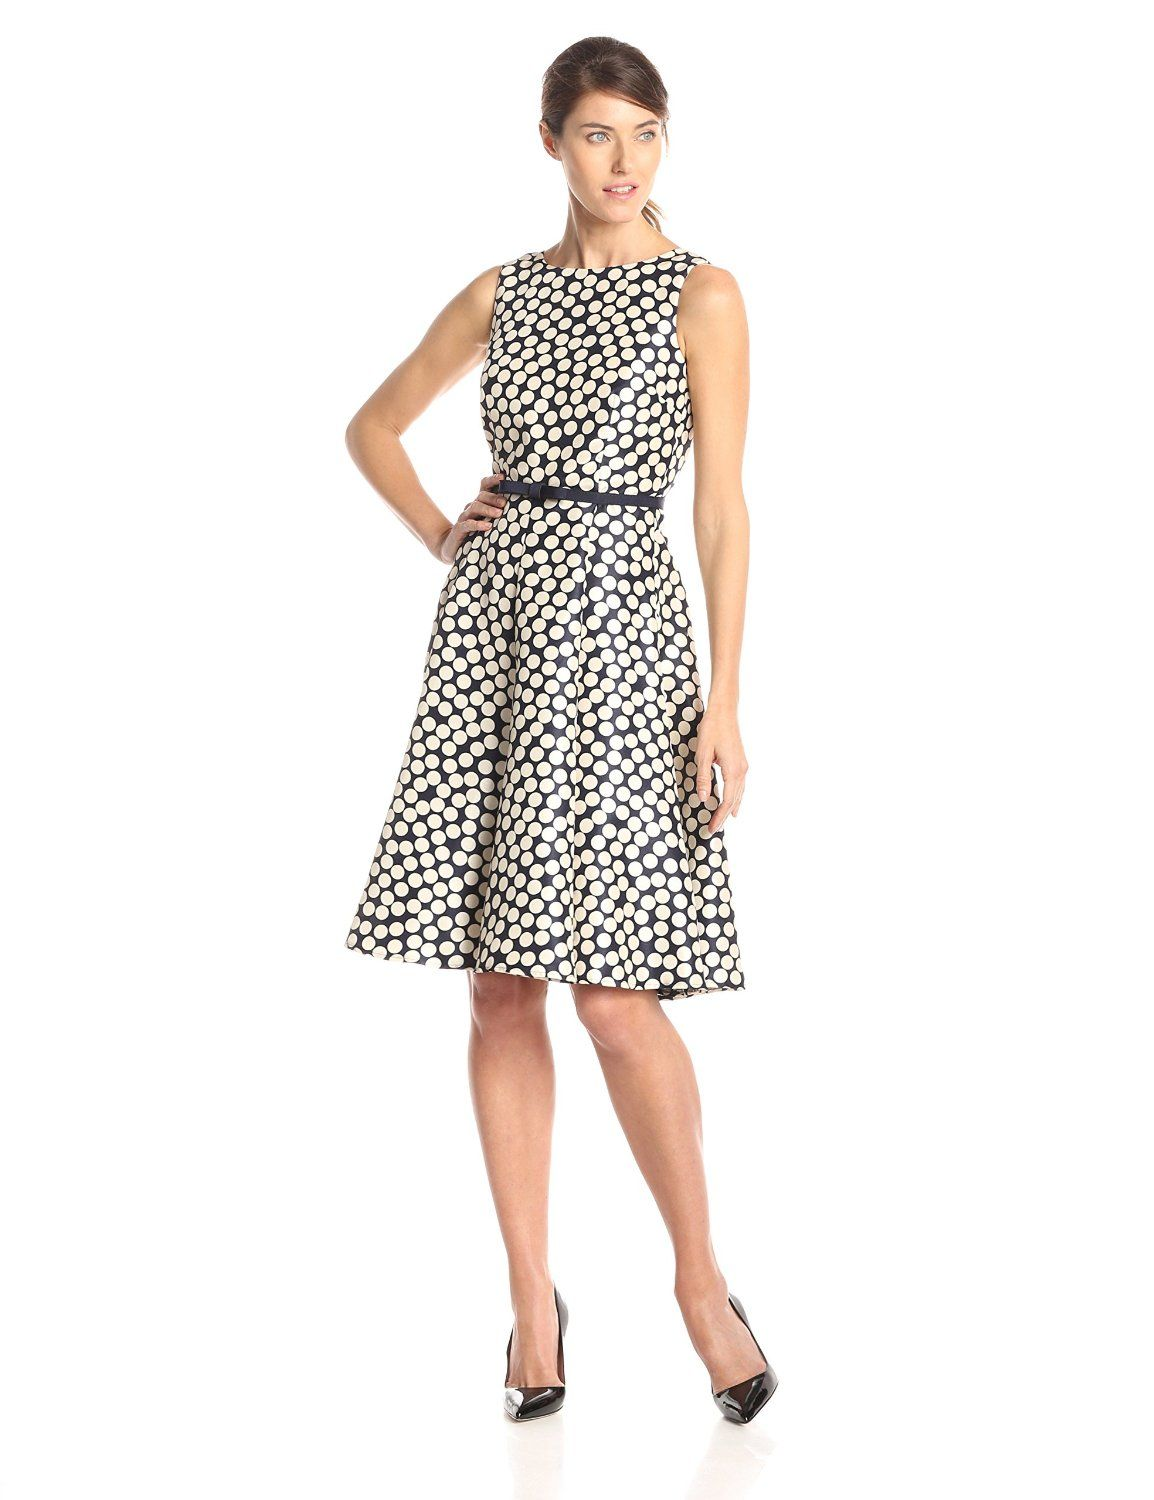 Sleeveless Polka Dot Fit and Flare Dress by Julian Taylor